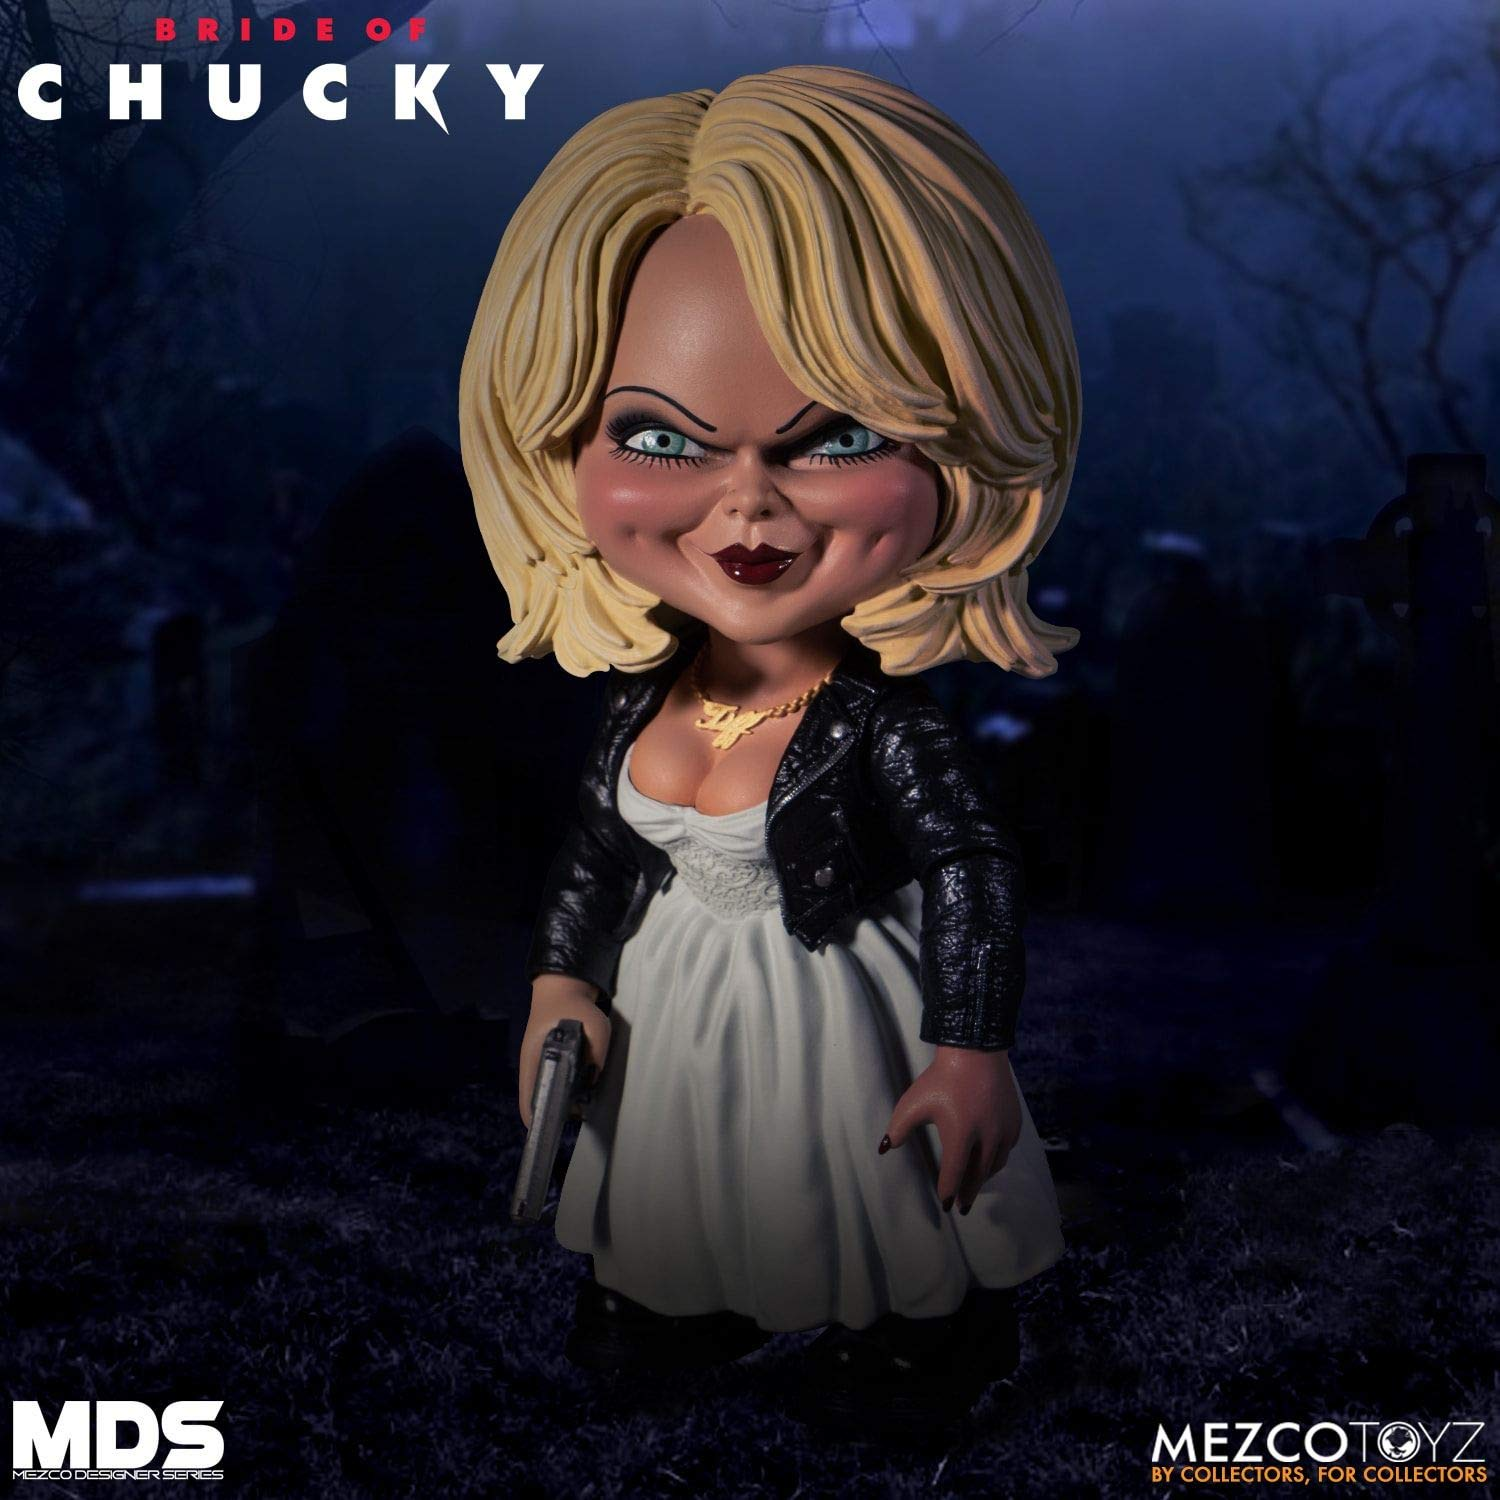 Mezco Tiffany Designer Series Bride of Chucky Figure - Collectors Row Inc.